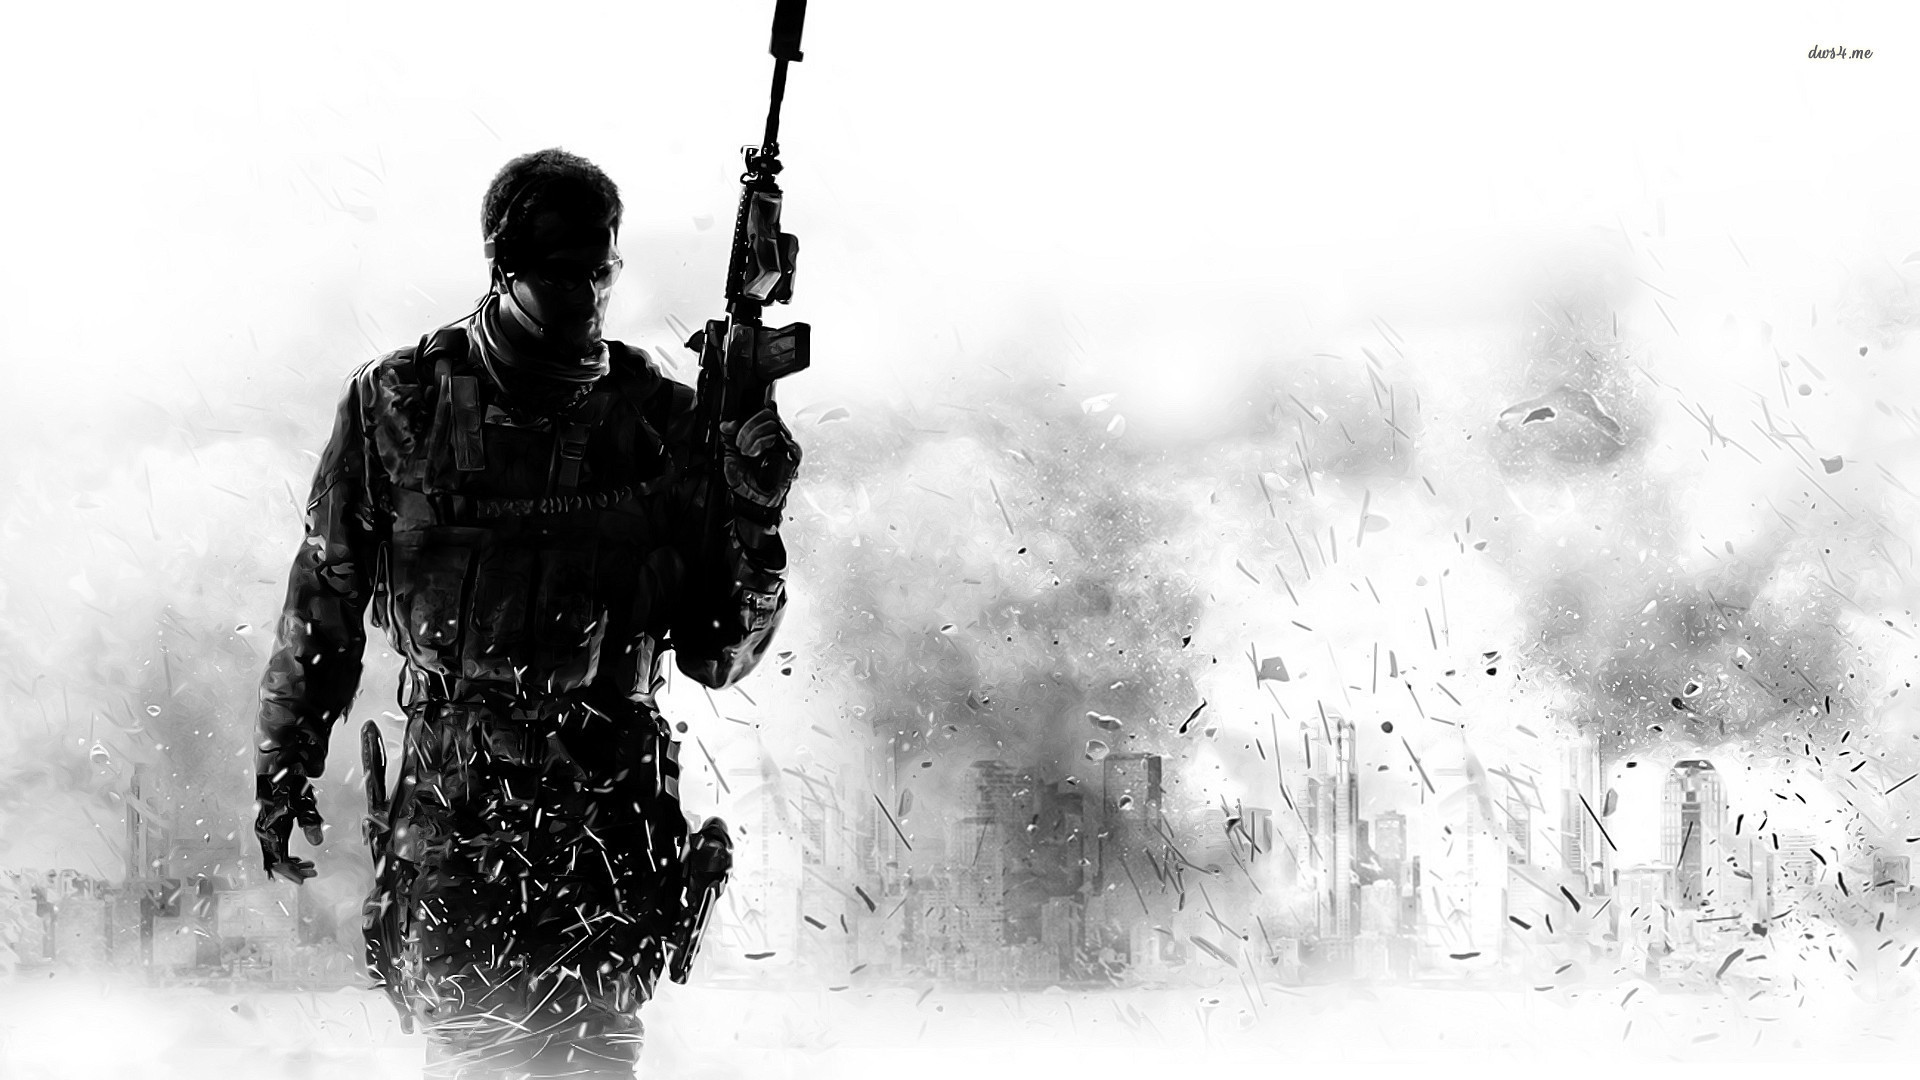 Cod mw3 wallpapers 75 images - Mw3 wallpaper ...